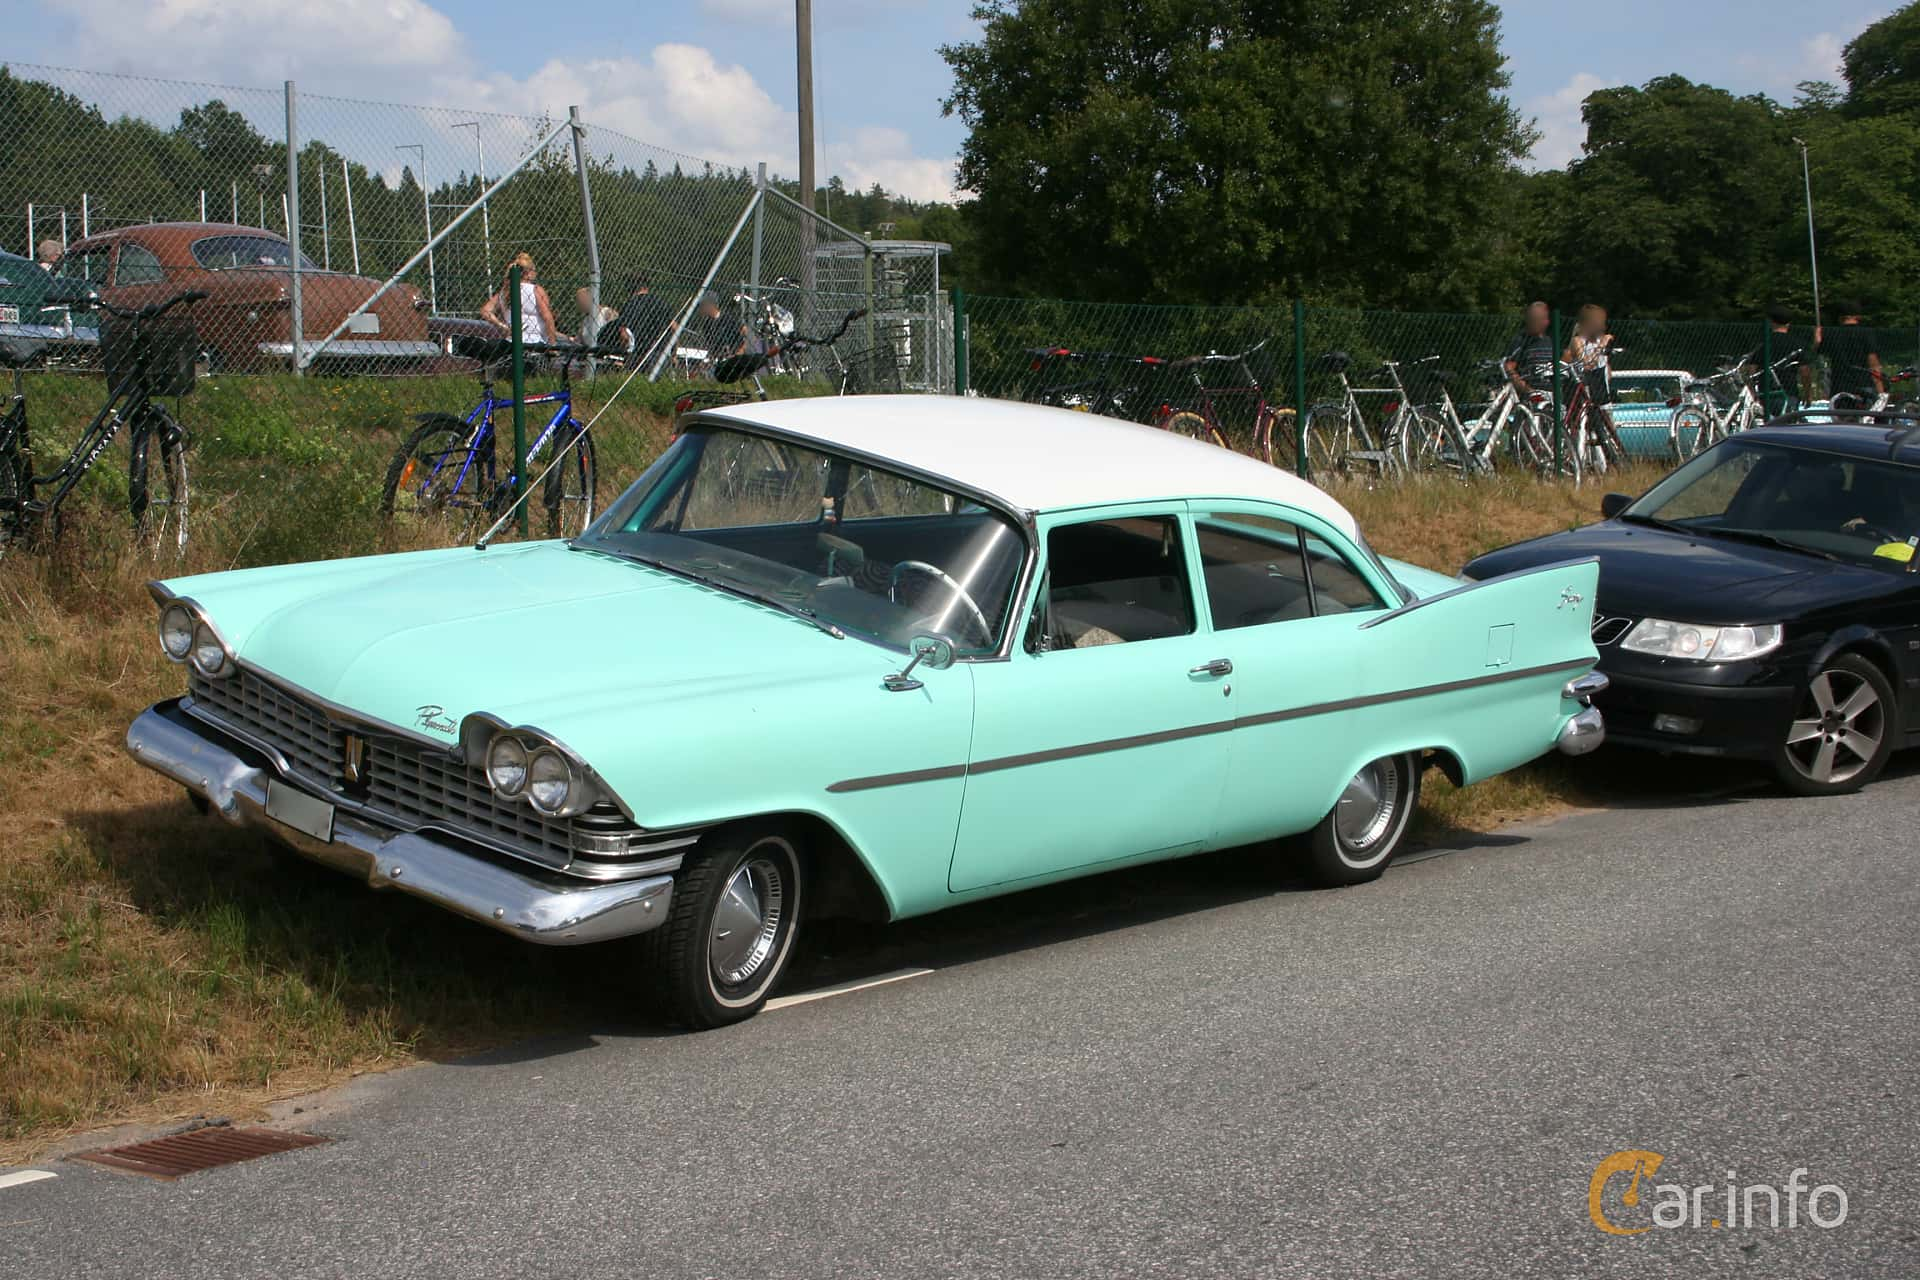 2 Images Of Plymouth Savoy Sedan 59 V8 Manual 1959 By Espee 1960 Front Side